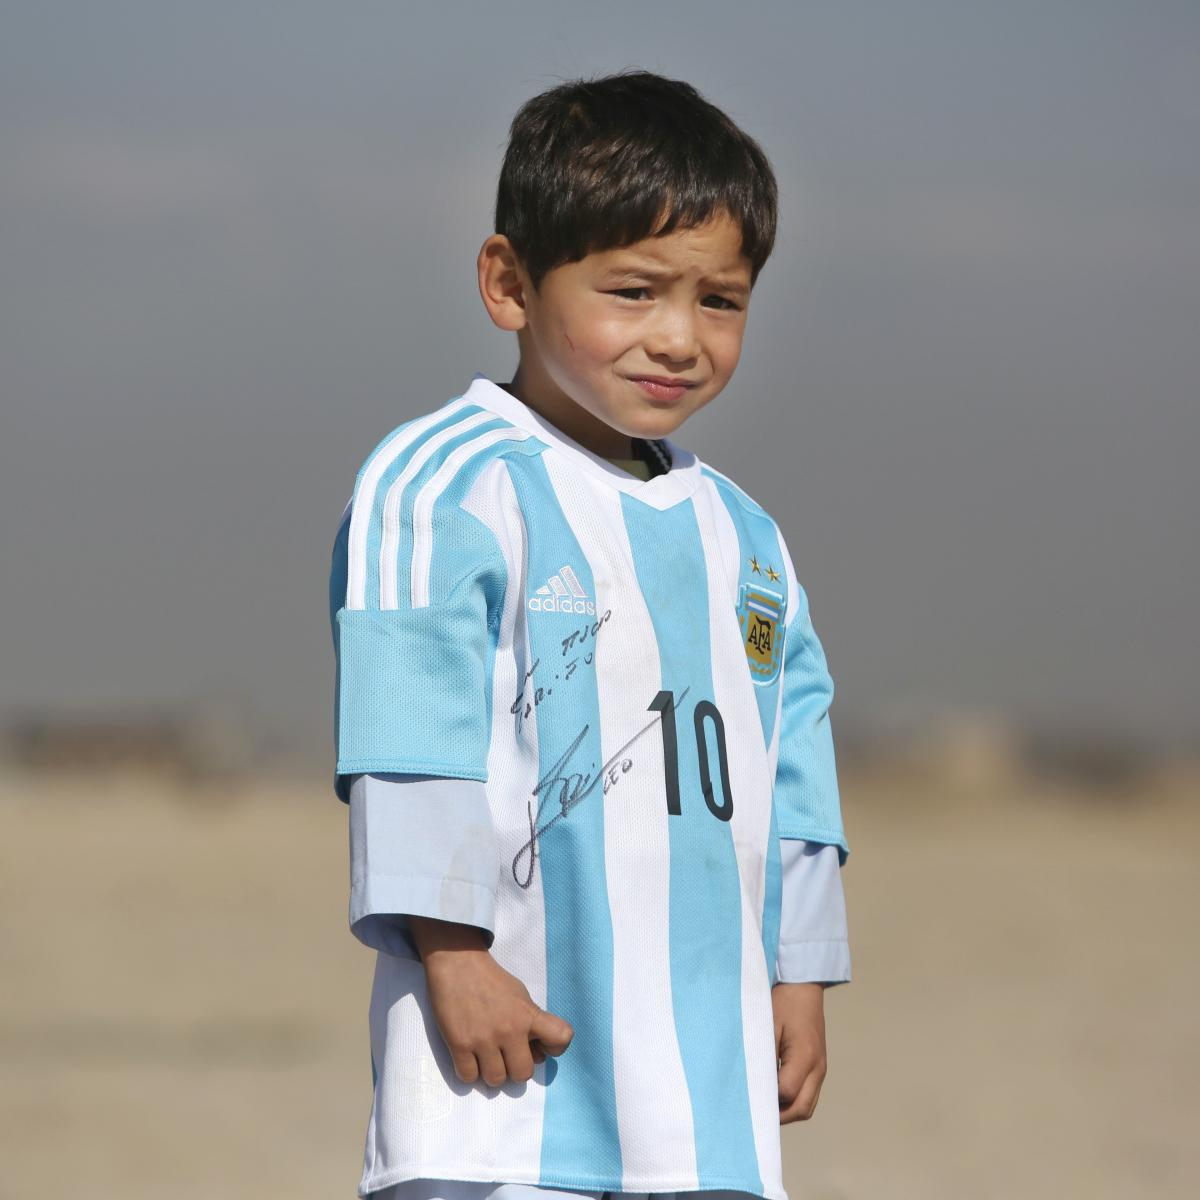 Murtaza Ahmadi, Afghan Lionel Messi Fan, Forced to Flee Home Because of Violence